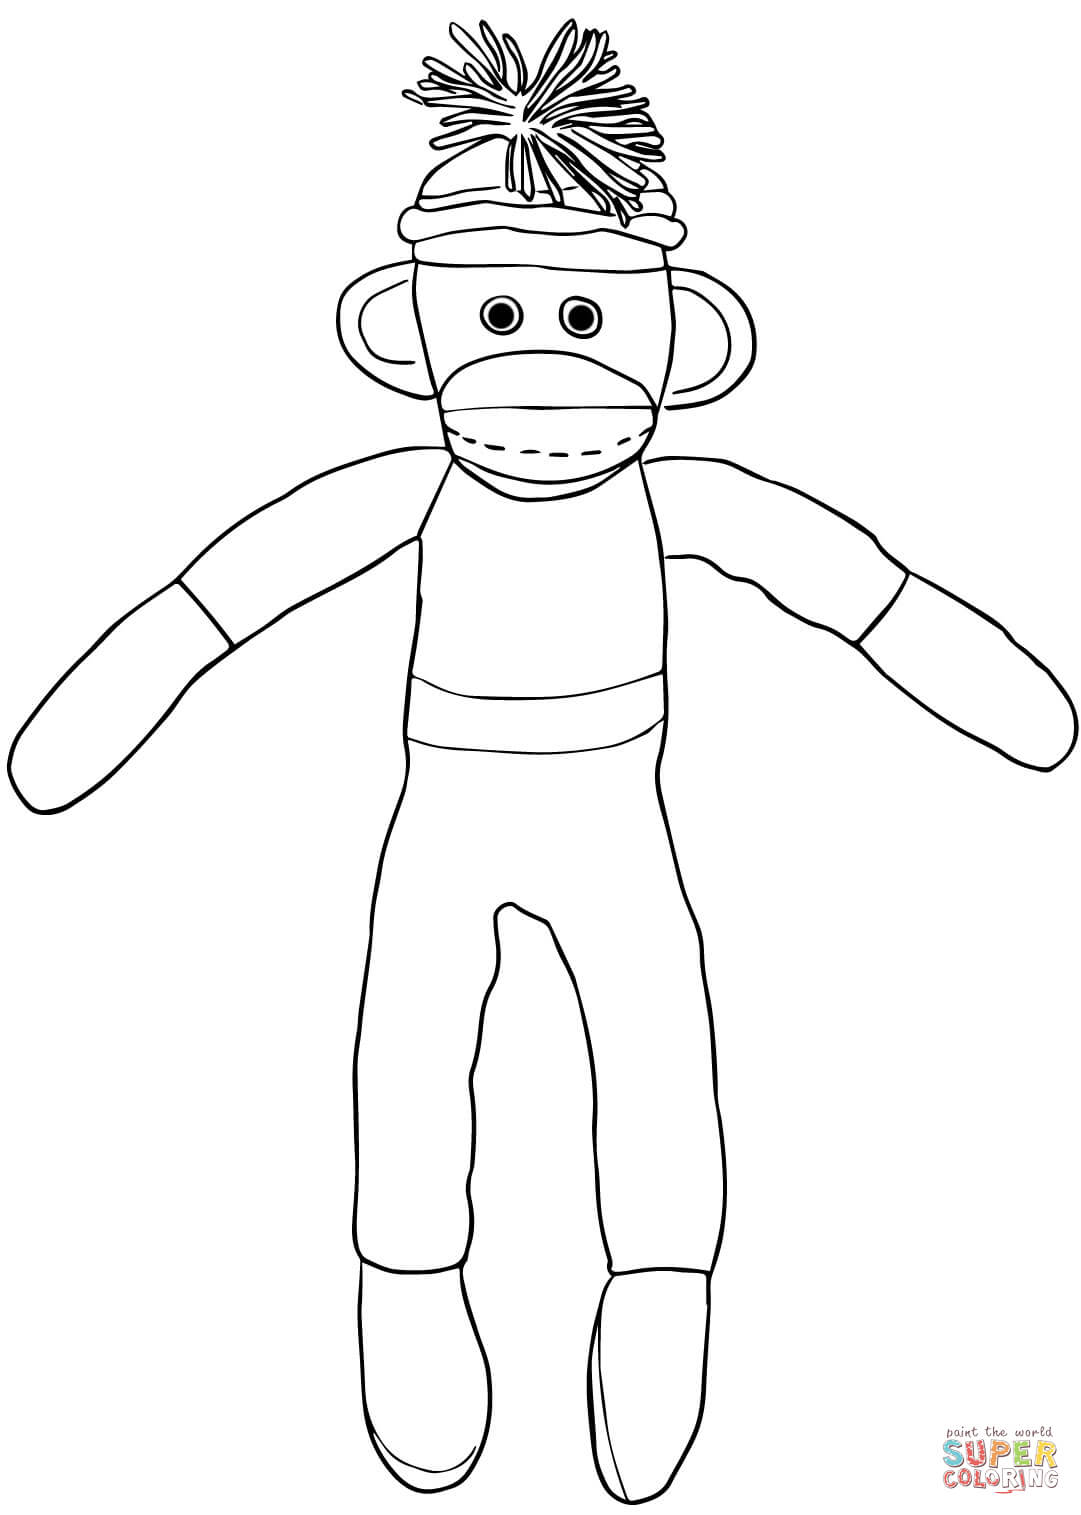 Long Socks Page Coloring Pages